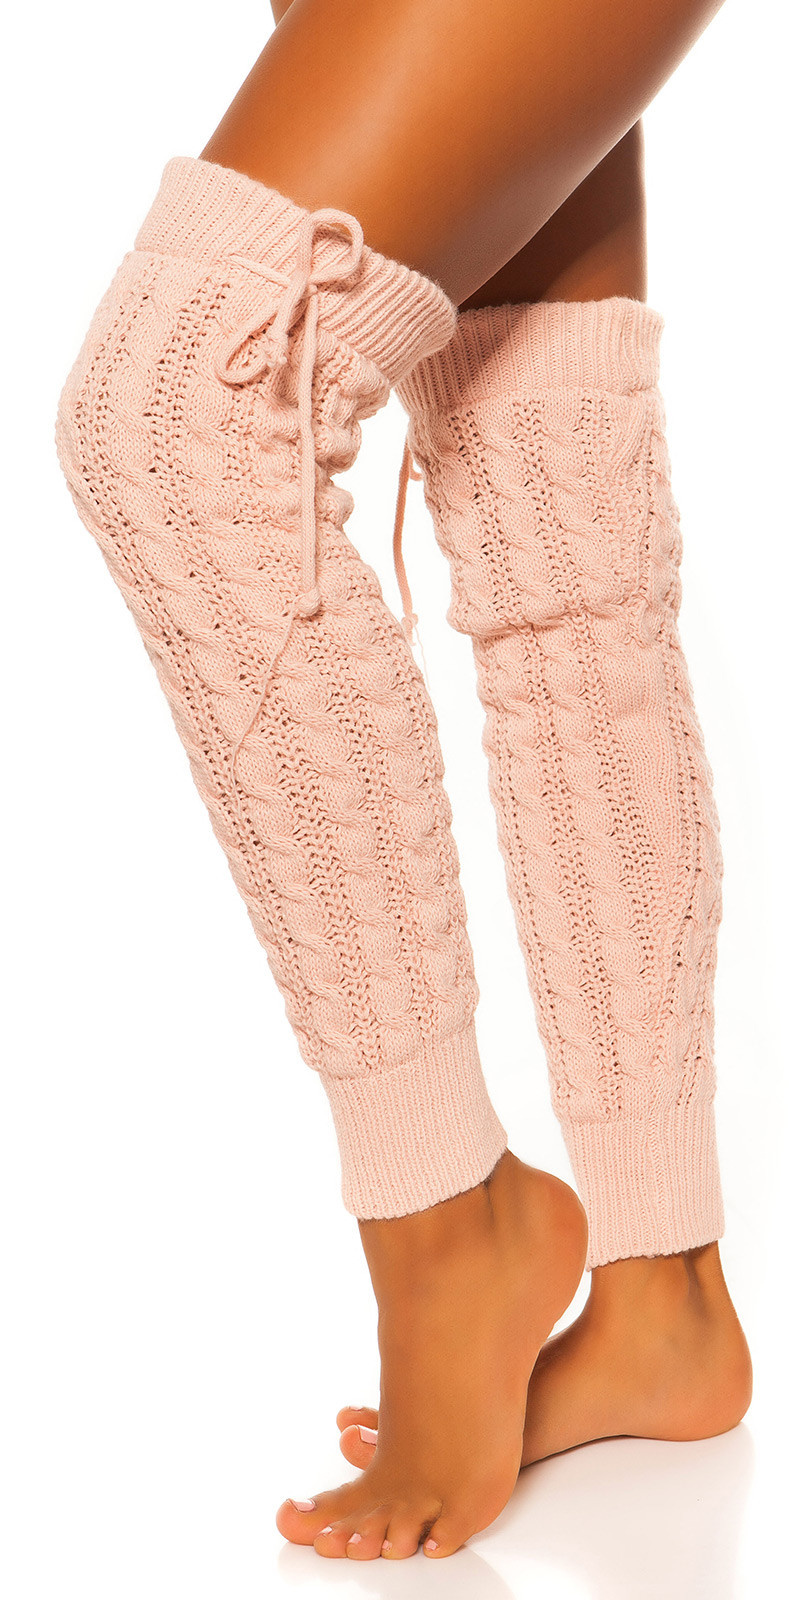 Sexy knit leg warmers with cable stitch pattern Pink